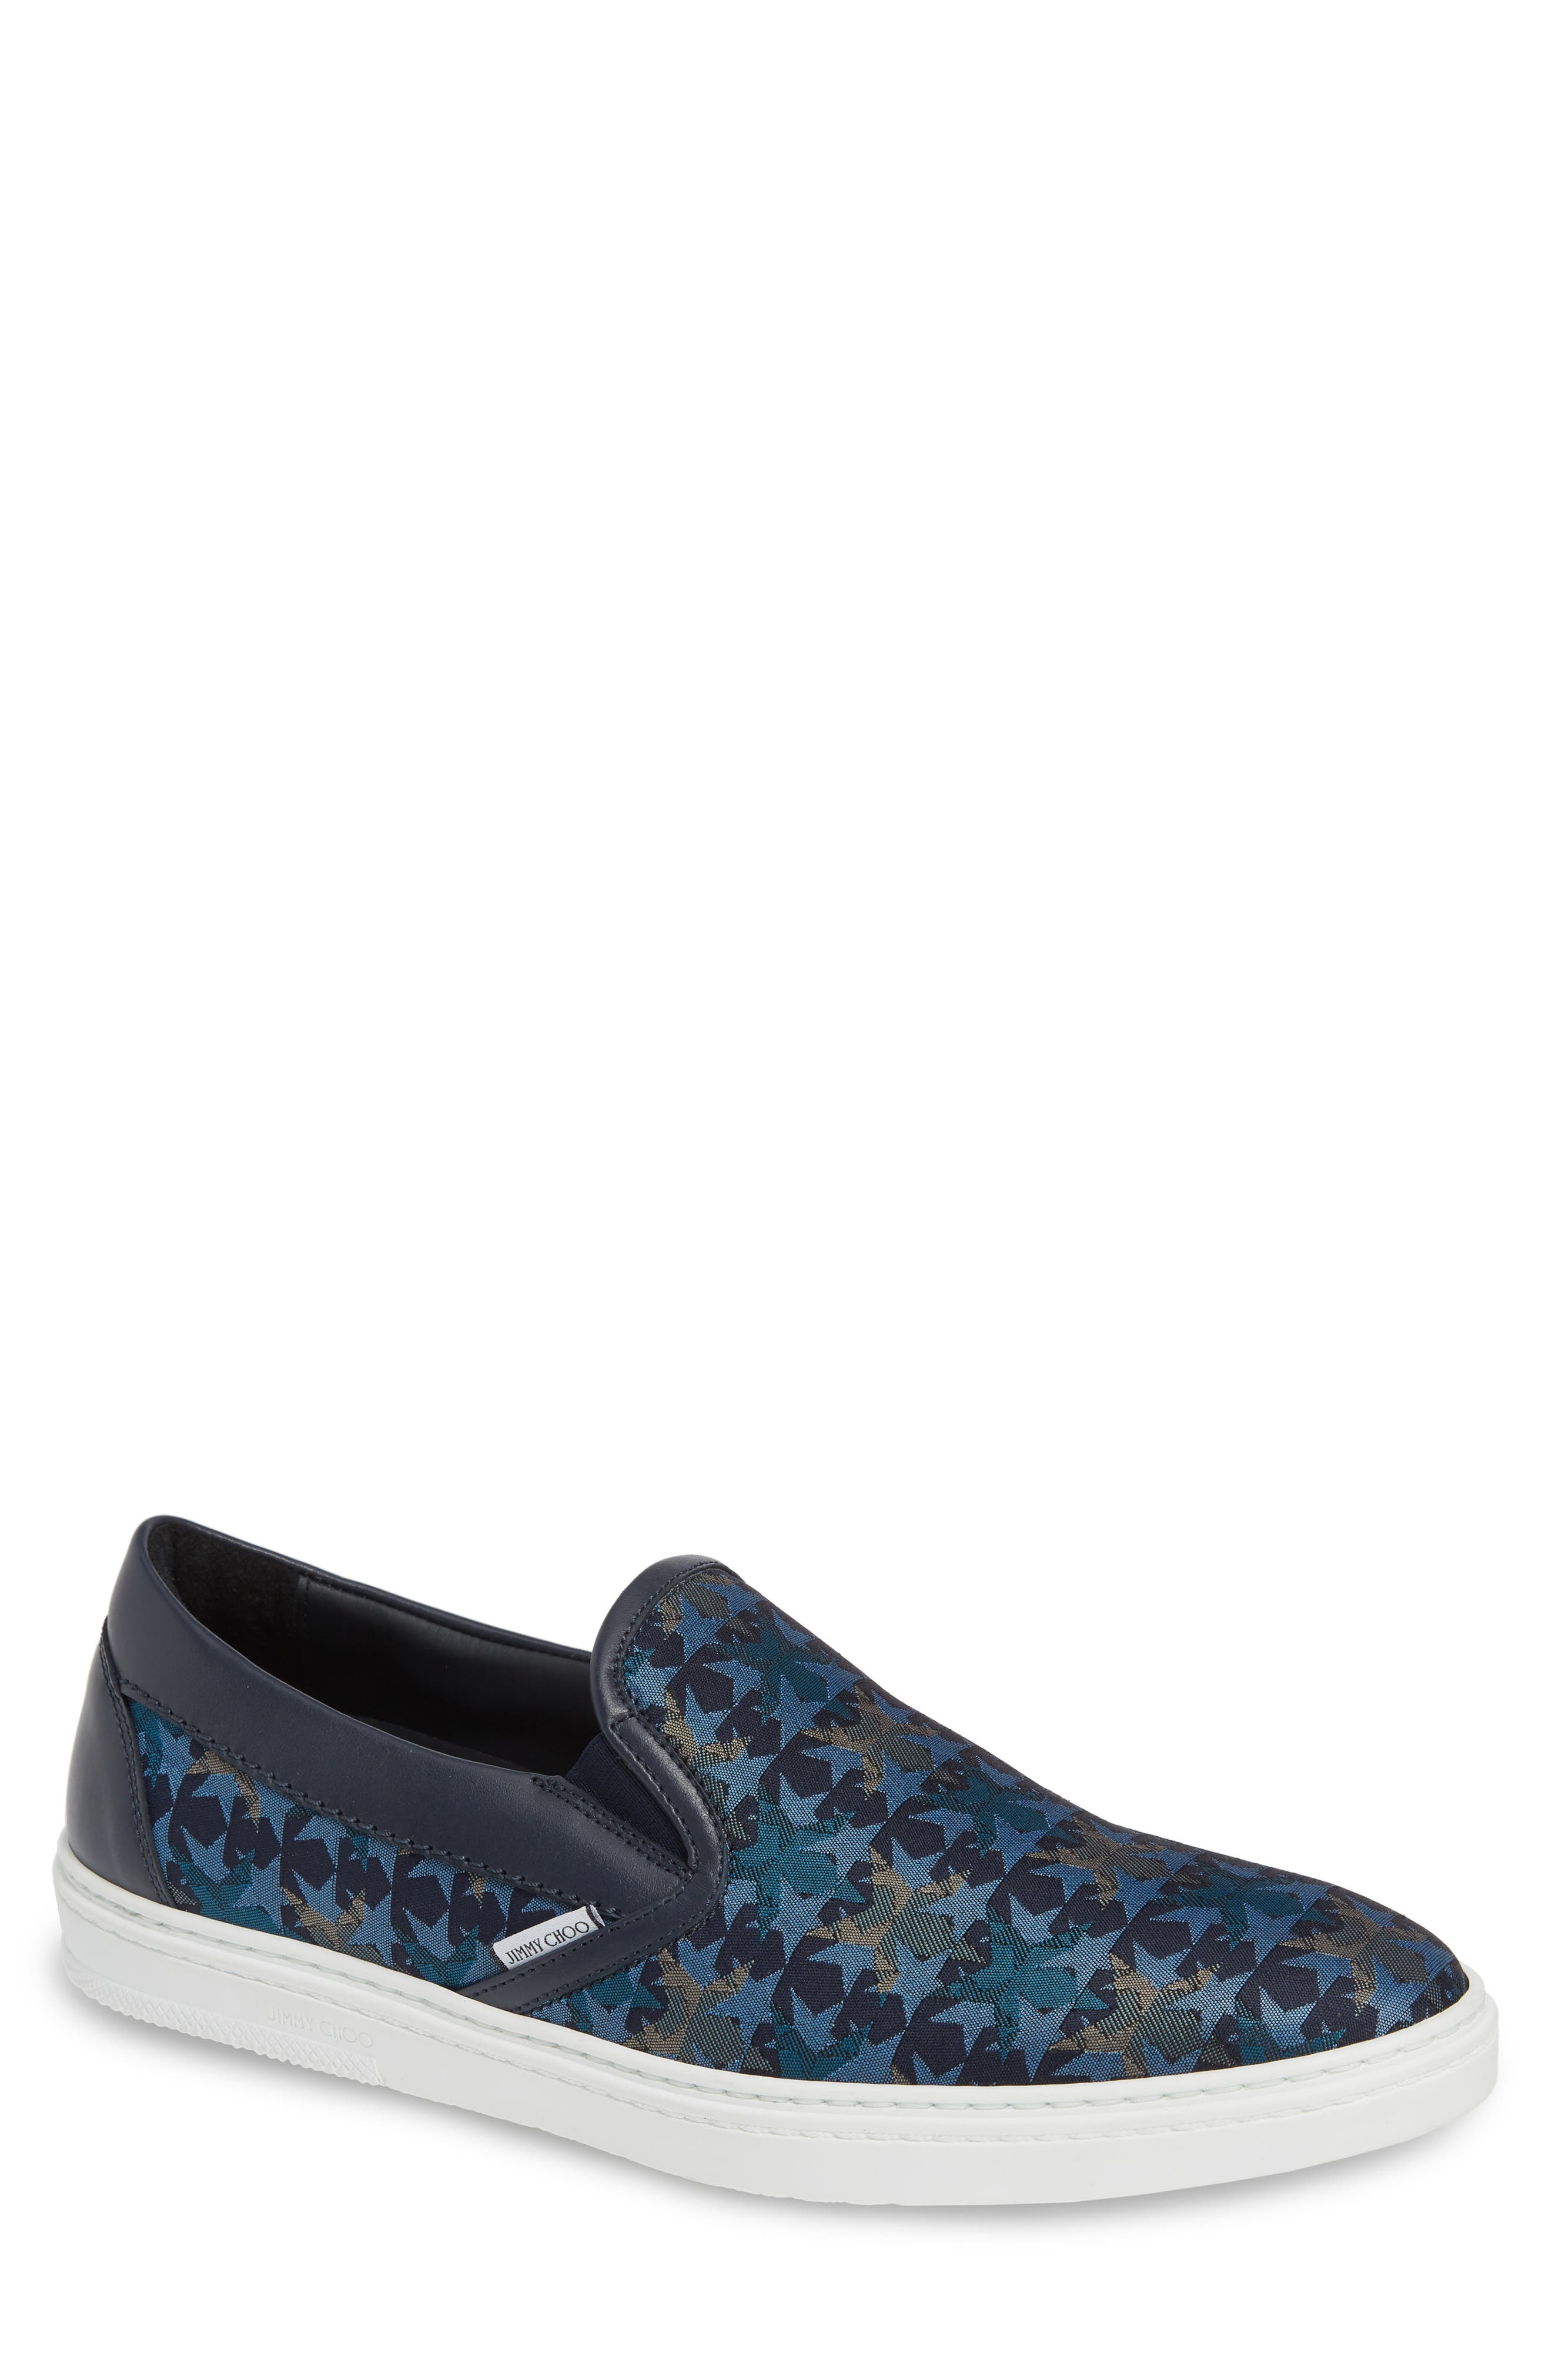 Grove Slip-On,                             Main thumbnail 1, color,                             NAVY MIX